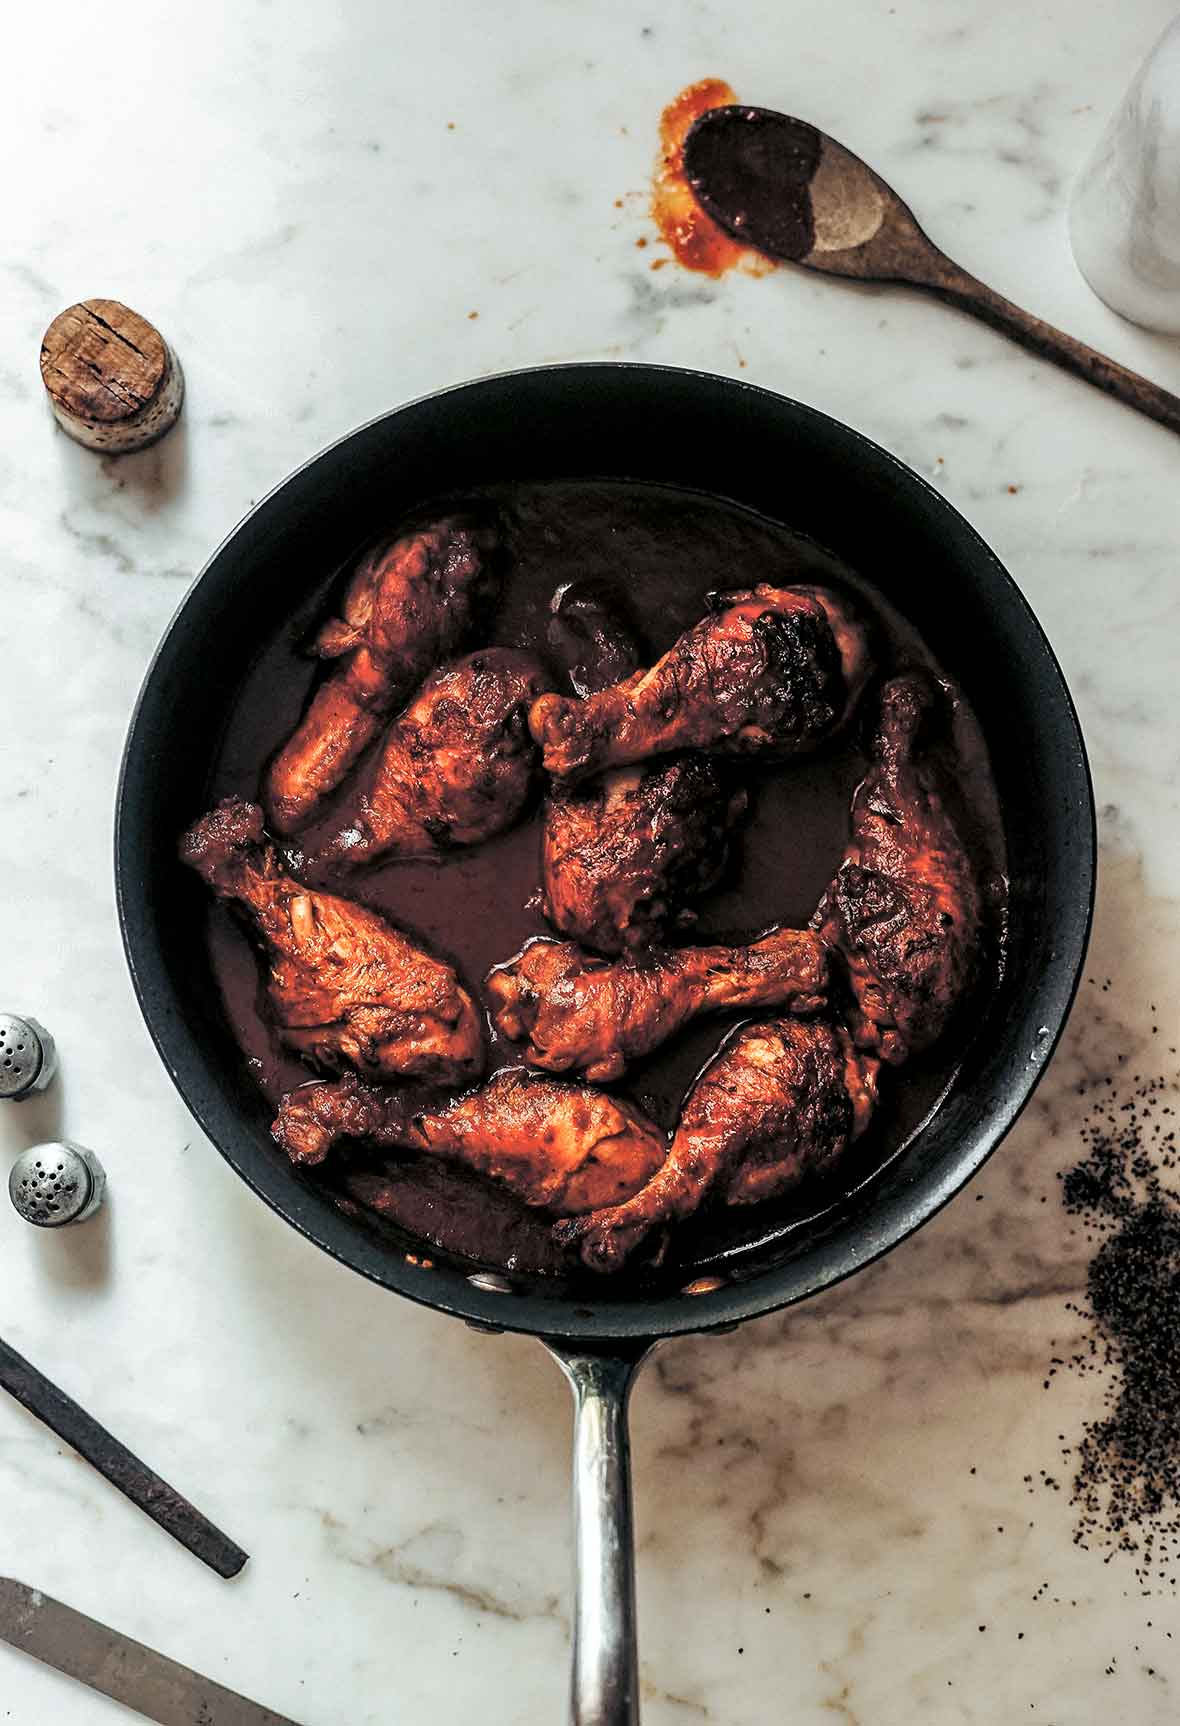 A skillet filled with chicken drumsticks braised in wine with a wooden spoon and wine cork lying beside the skillet.